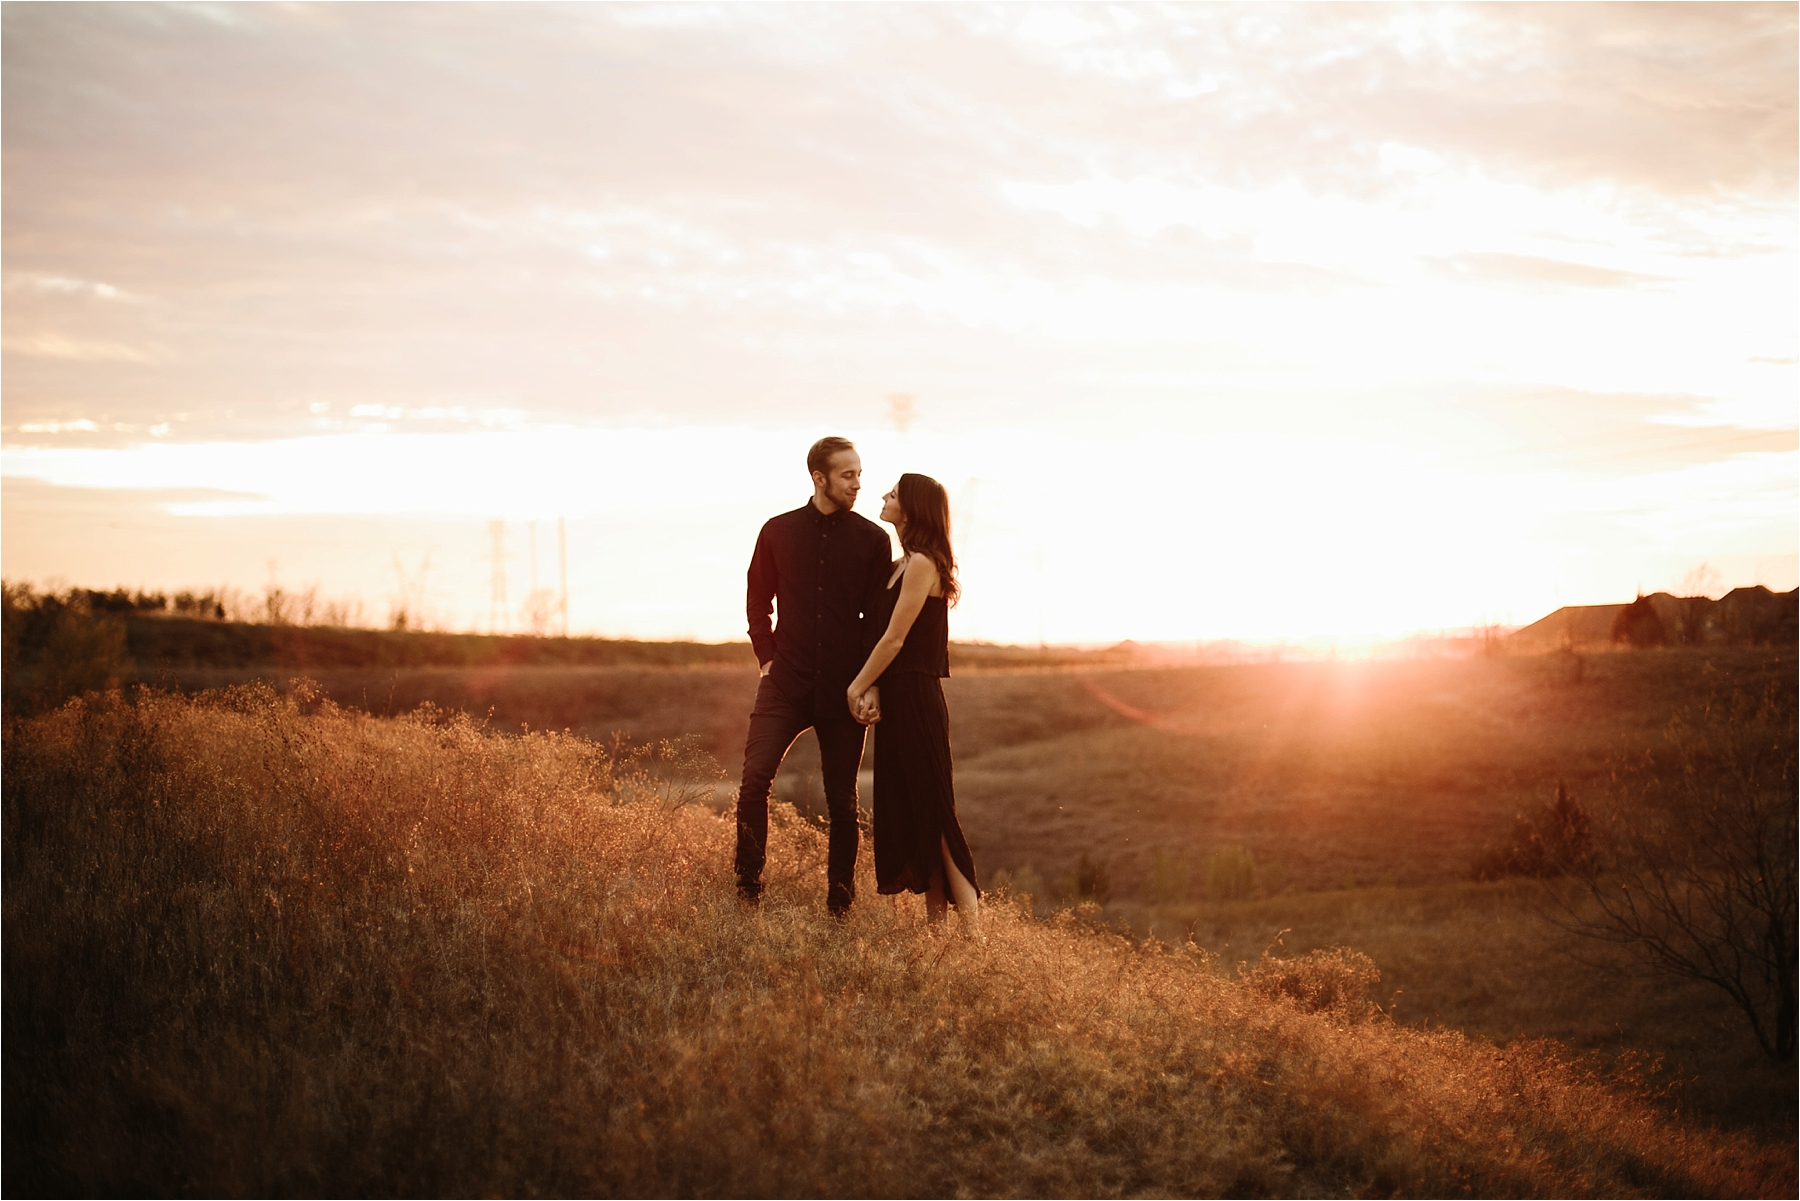 Trey + Phoebe __ a playful, intimate engagement session with dark_neutral outfit inspiration by North Texas Wedding Photographer Rachel Meagan Photography __ 43